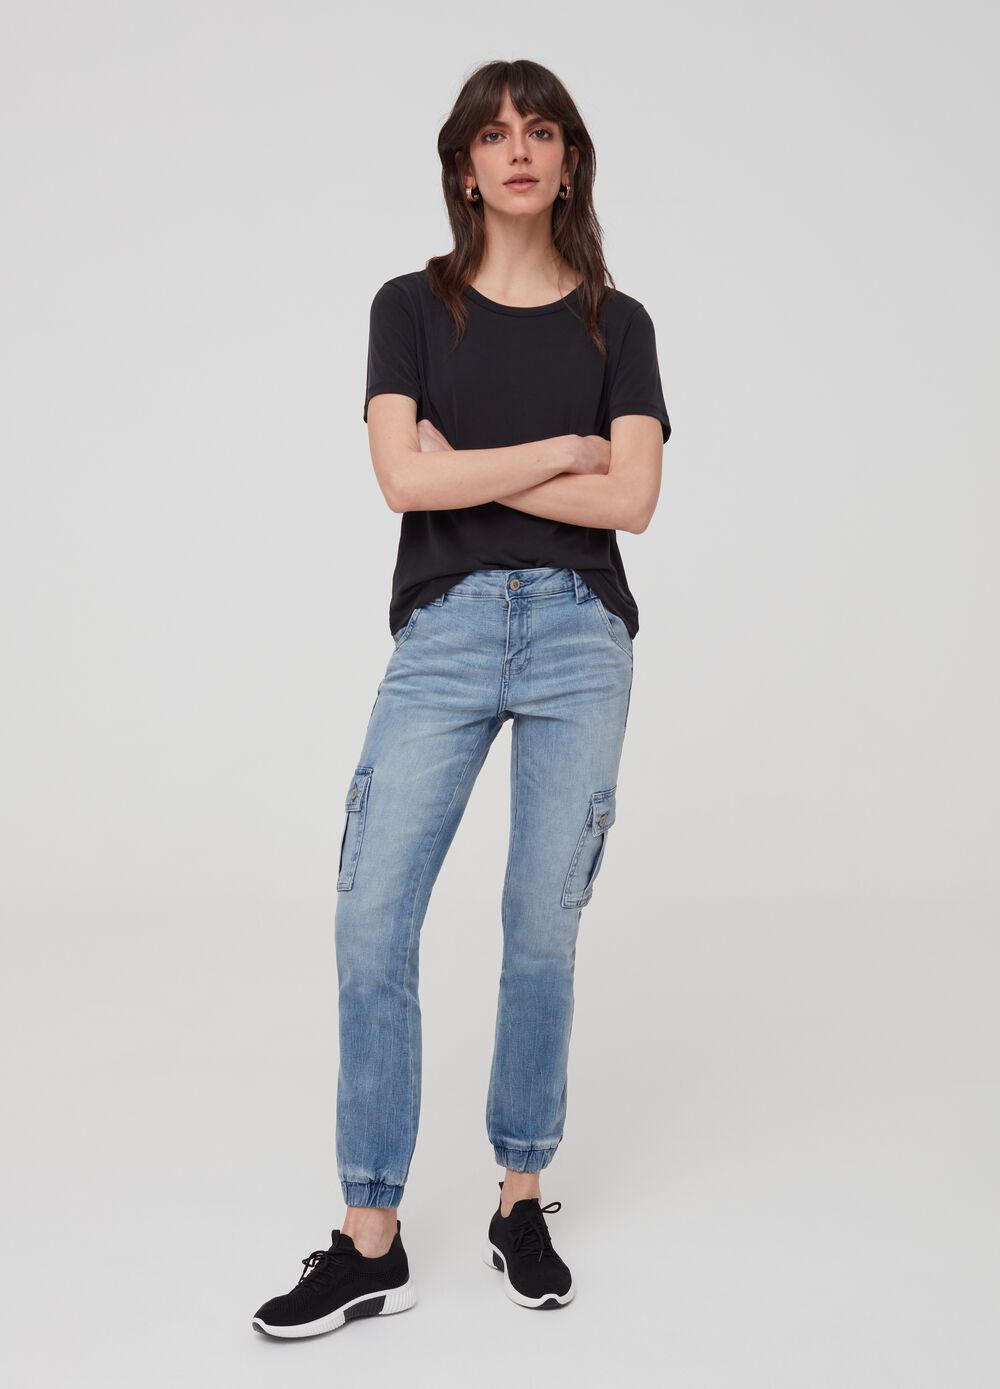 Stretch denim jogging trousers with pockets